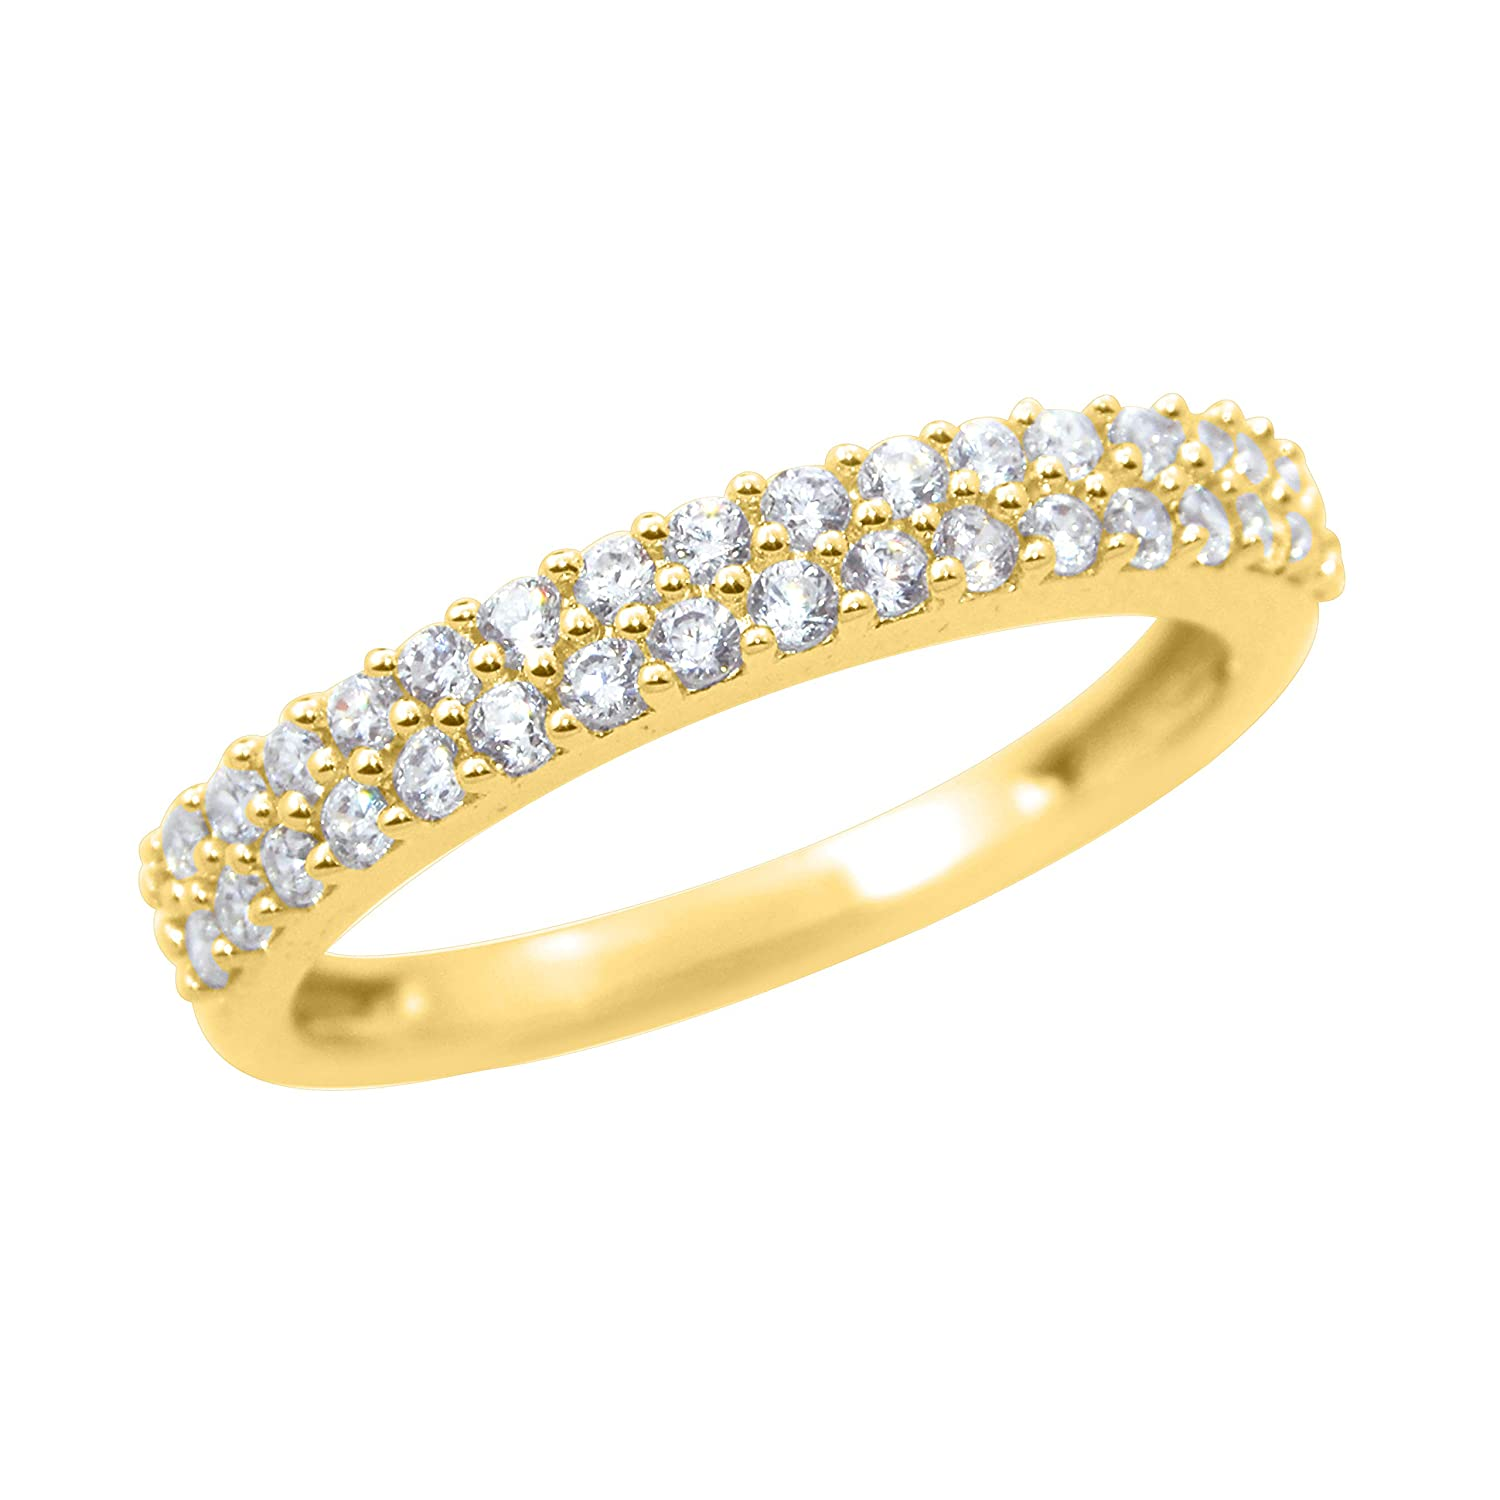 Diamond Scotch Cubic Zirconia Anniversary Wedding 2-Row Eternity Stackable Band Ring for Women 14K Gold Over